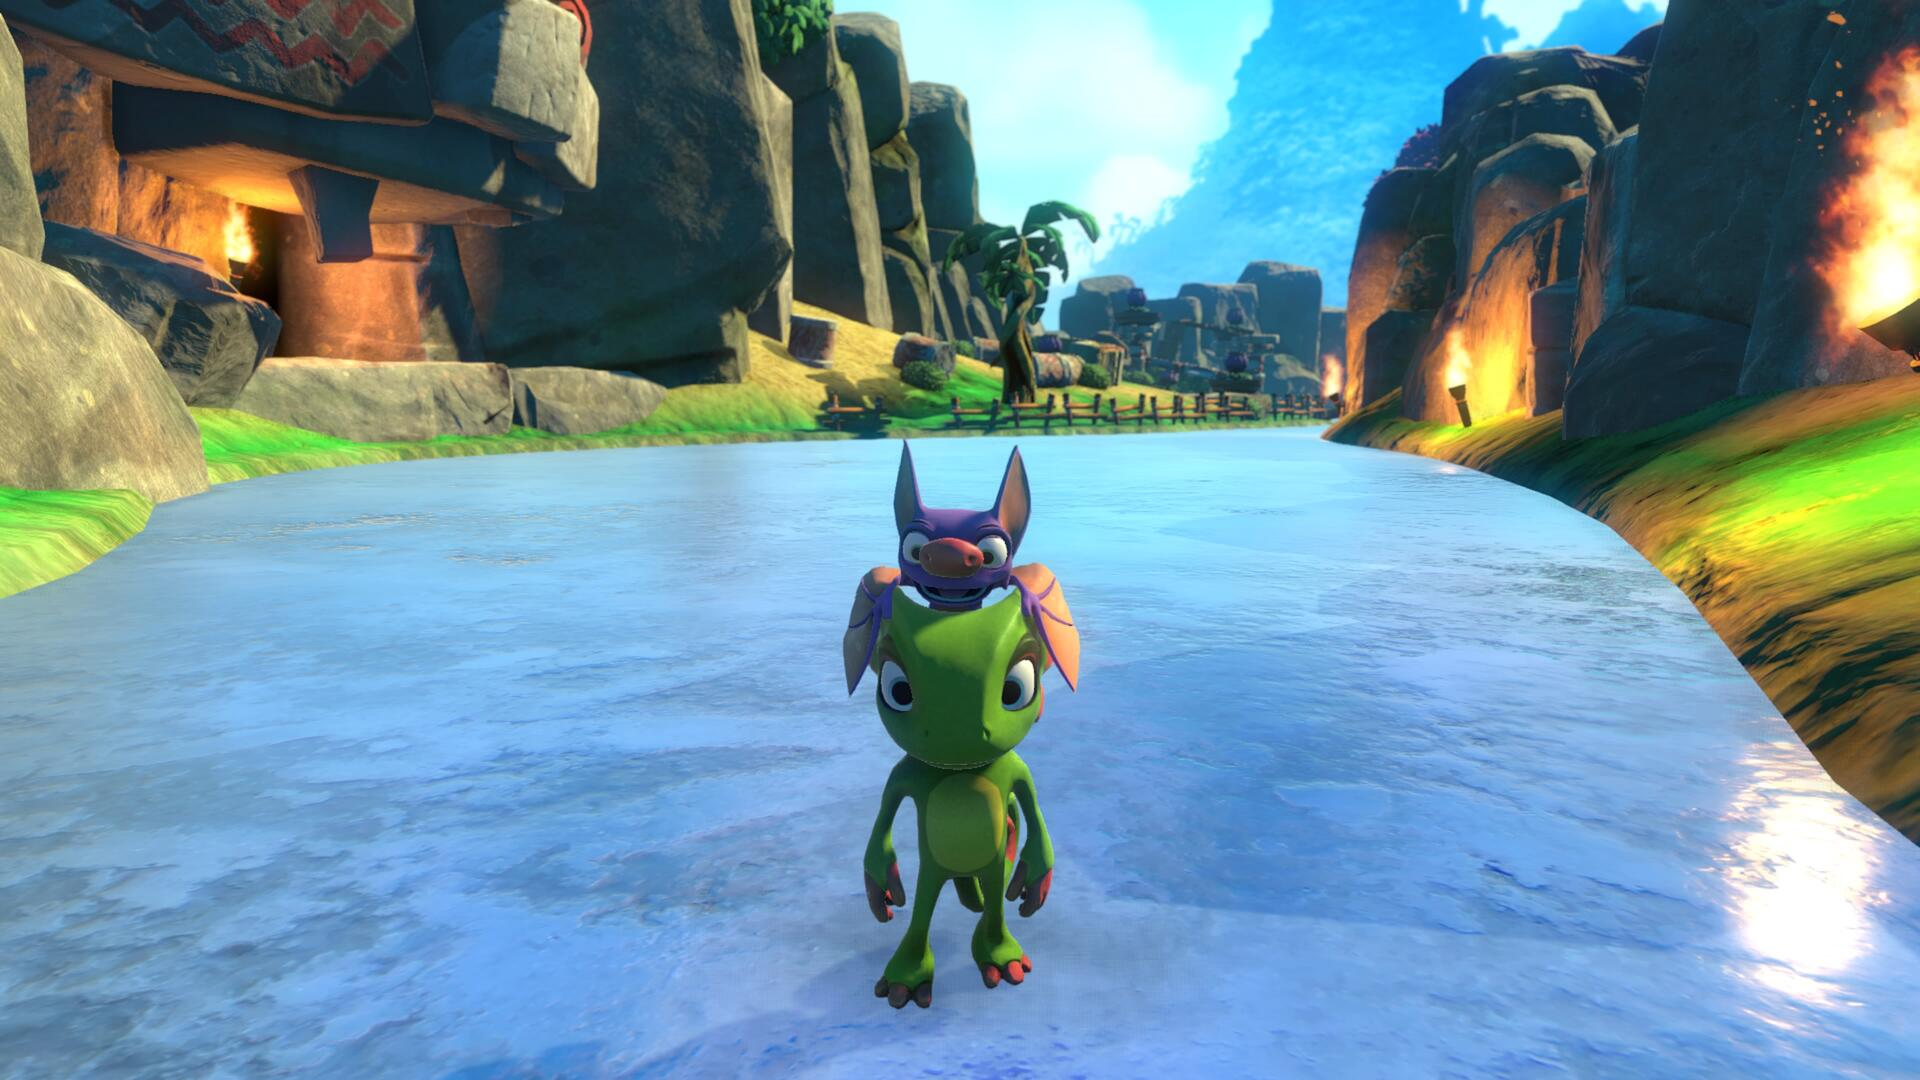 Yooka Laylee Guide Walkthrough - All Pagie Locations, Ghosts, Secrets, Collectables, Boss Battles